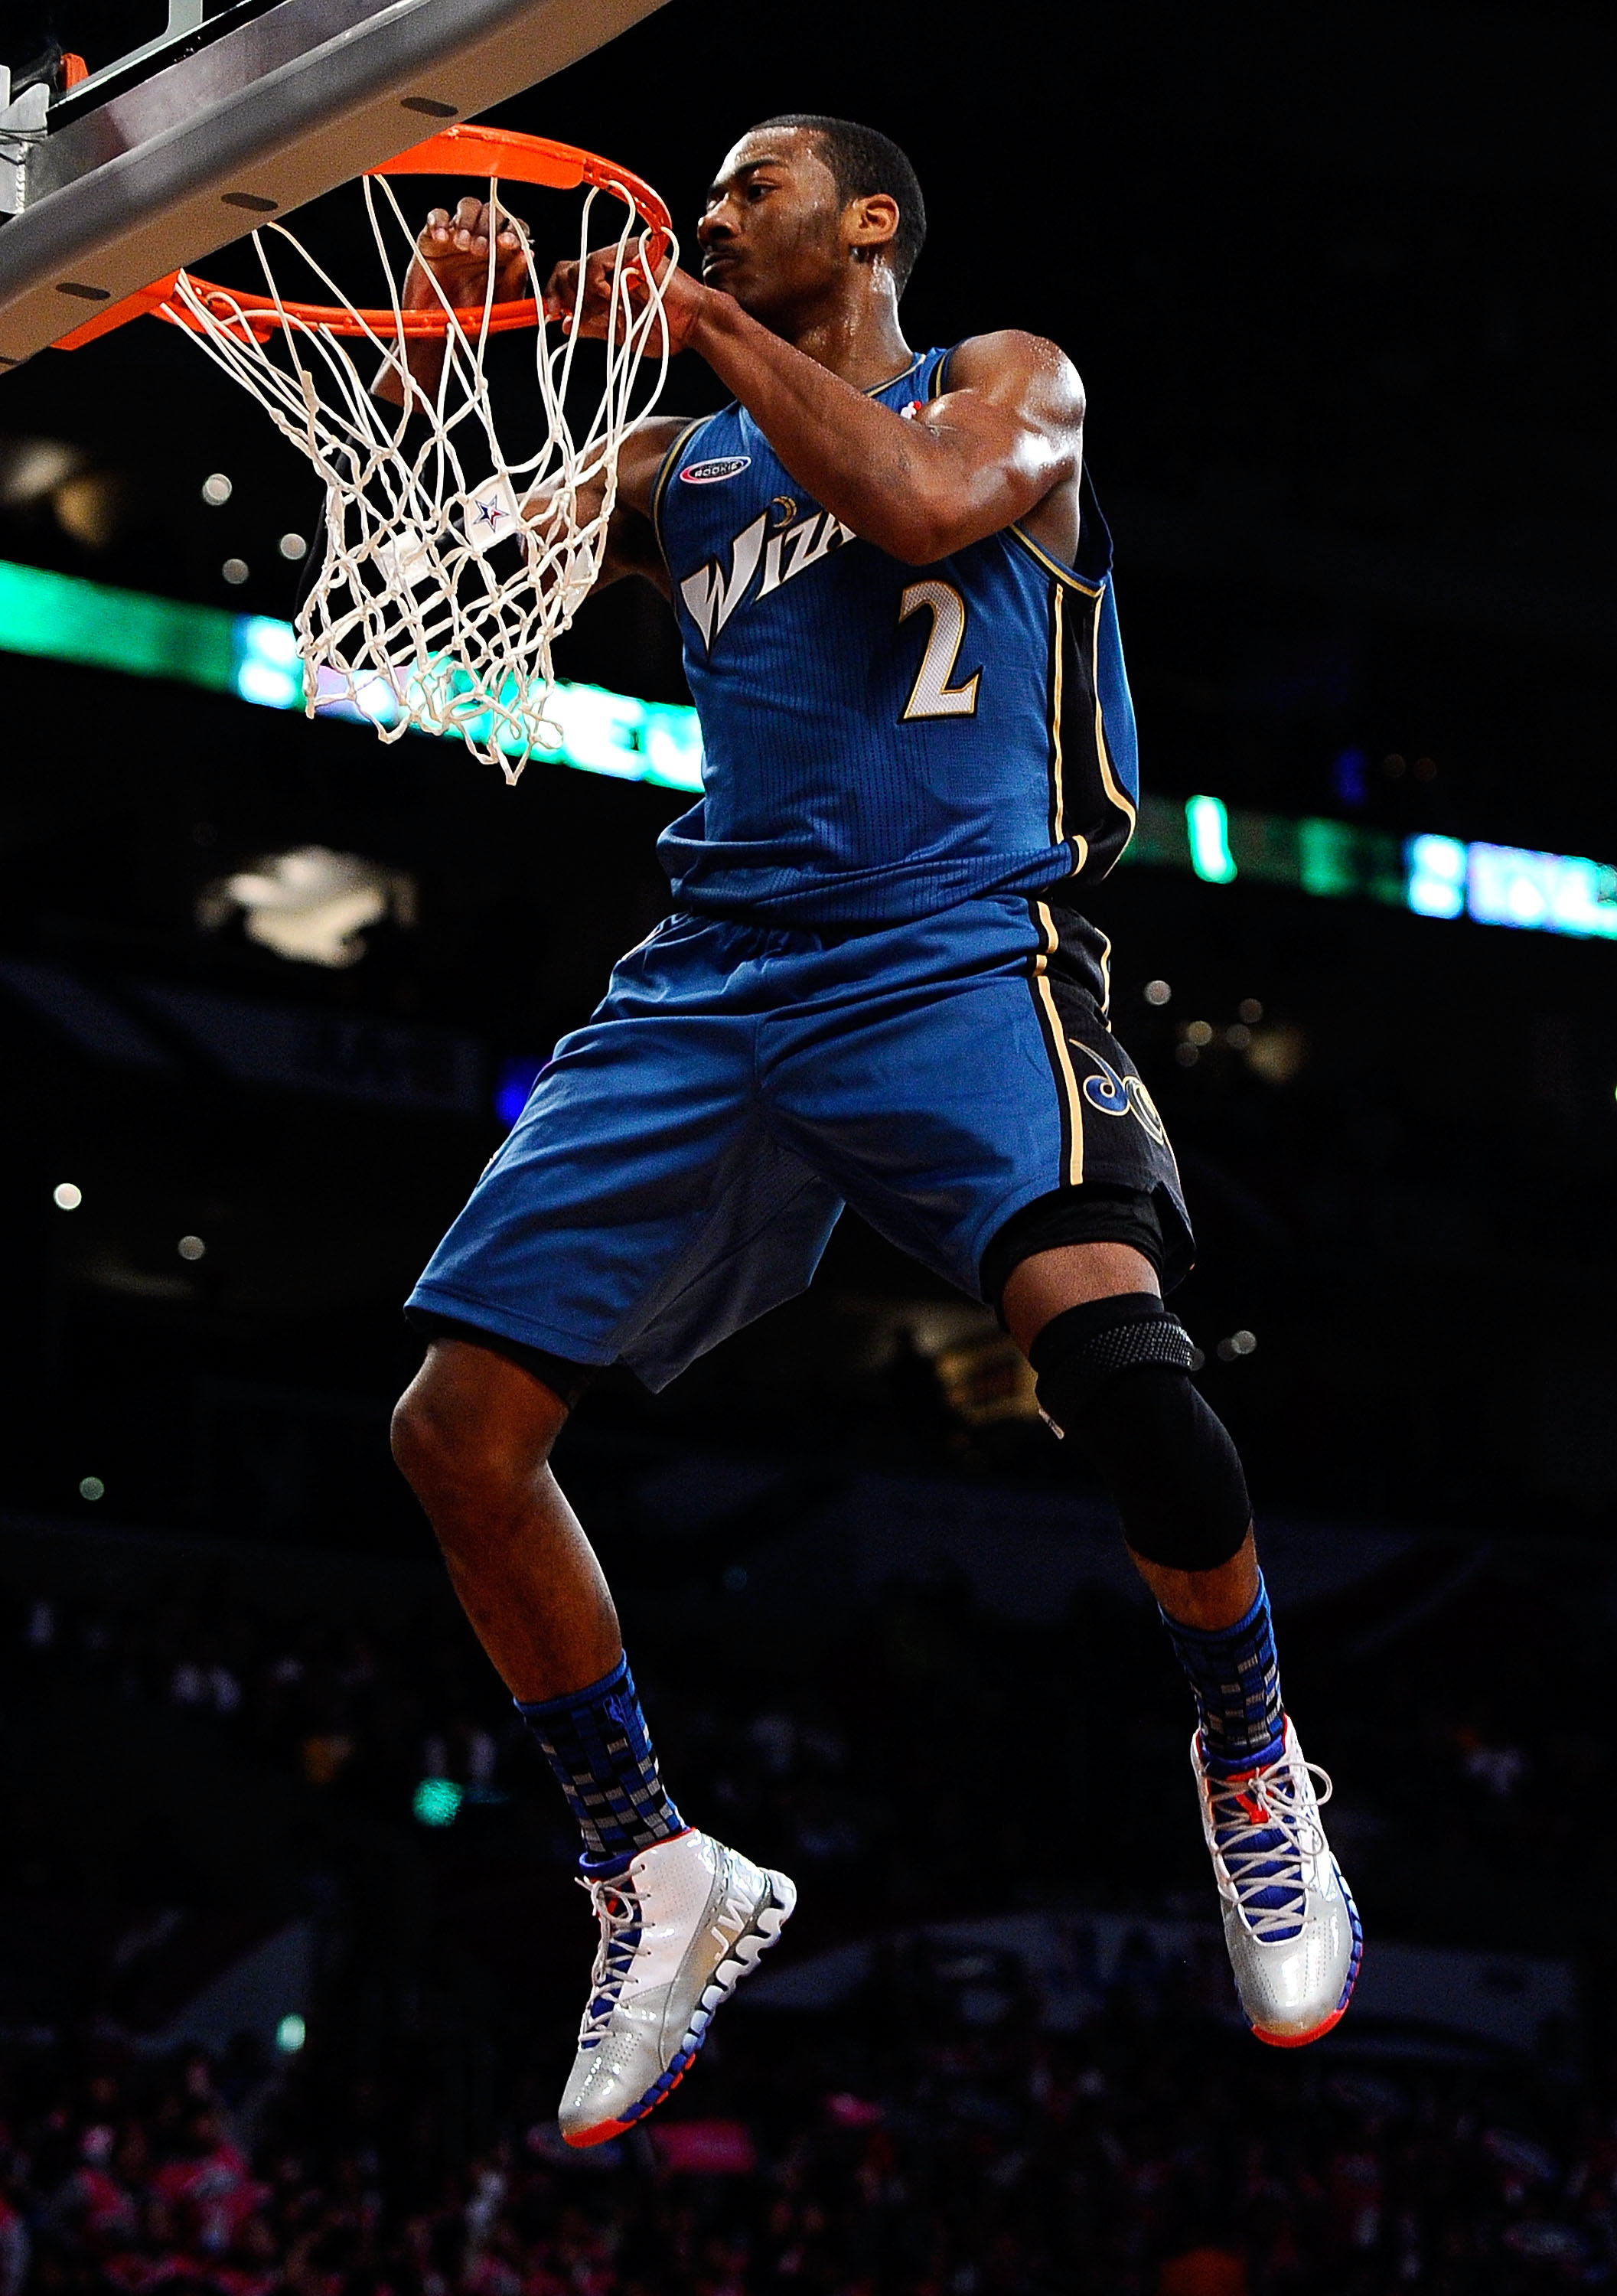 LOS ANGELES, CA - FEBRUARY 18:  John Wall #2 of the Washington Wizards and the Rookie Team hangs on the rim in the second half during the T-Mobile Rookie Challenge and Youth Jam at Staples Center on February 18, 2011 in Los Angeles, California.  (Photo by